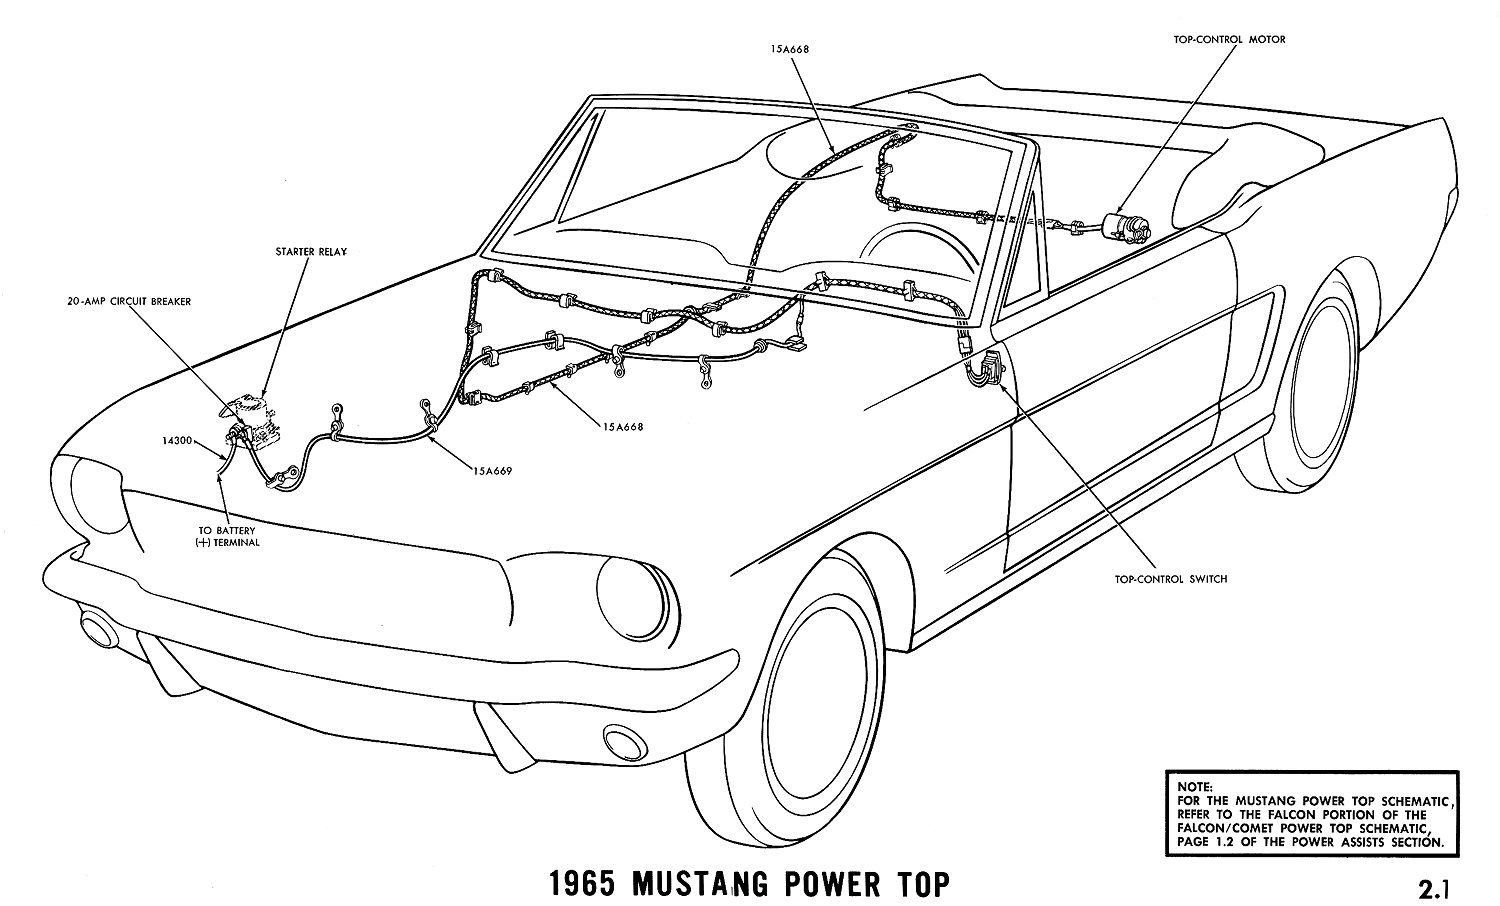 1965j 1965 mustang wiring diagrams average joe restoration wiring harness 1964 mustang at bayanpartner.co